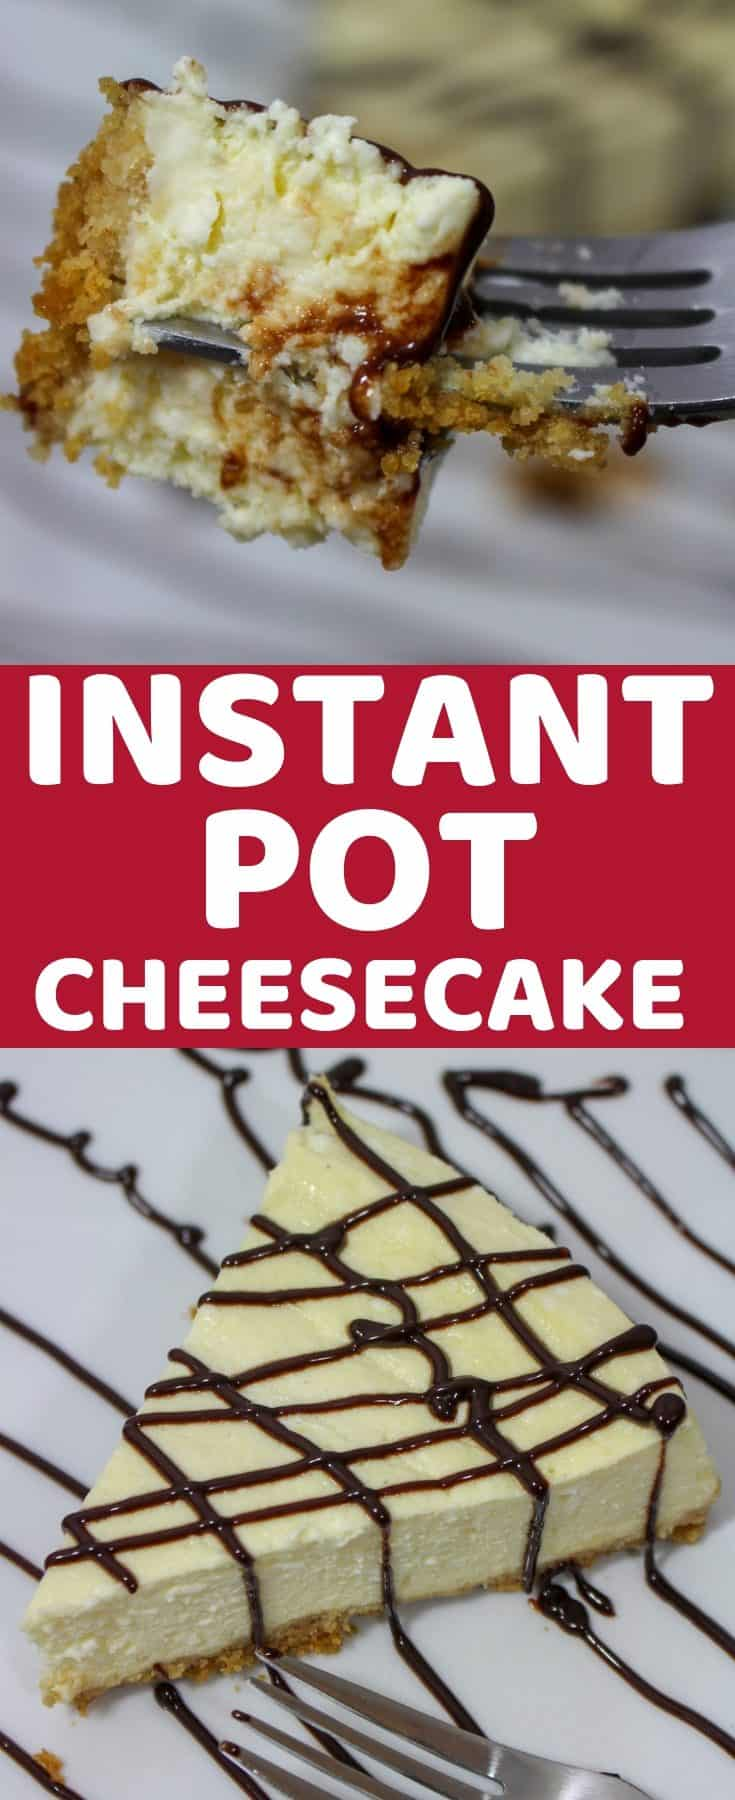 Easy Instant Pot Cheesecake